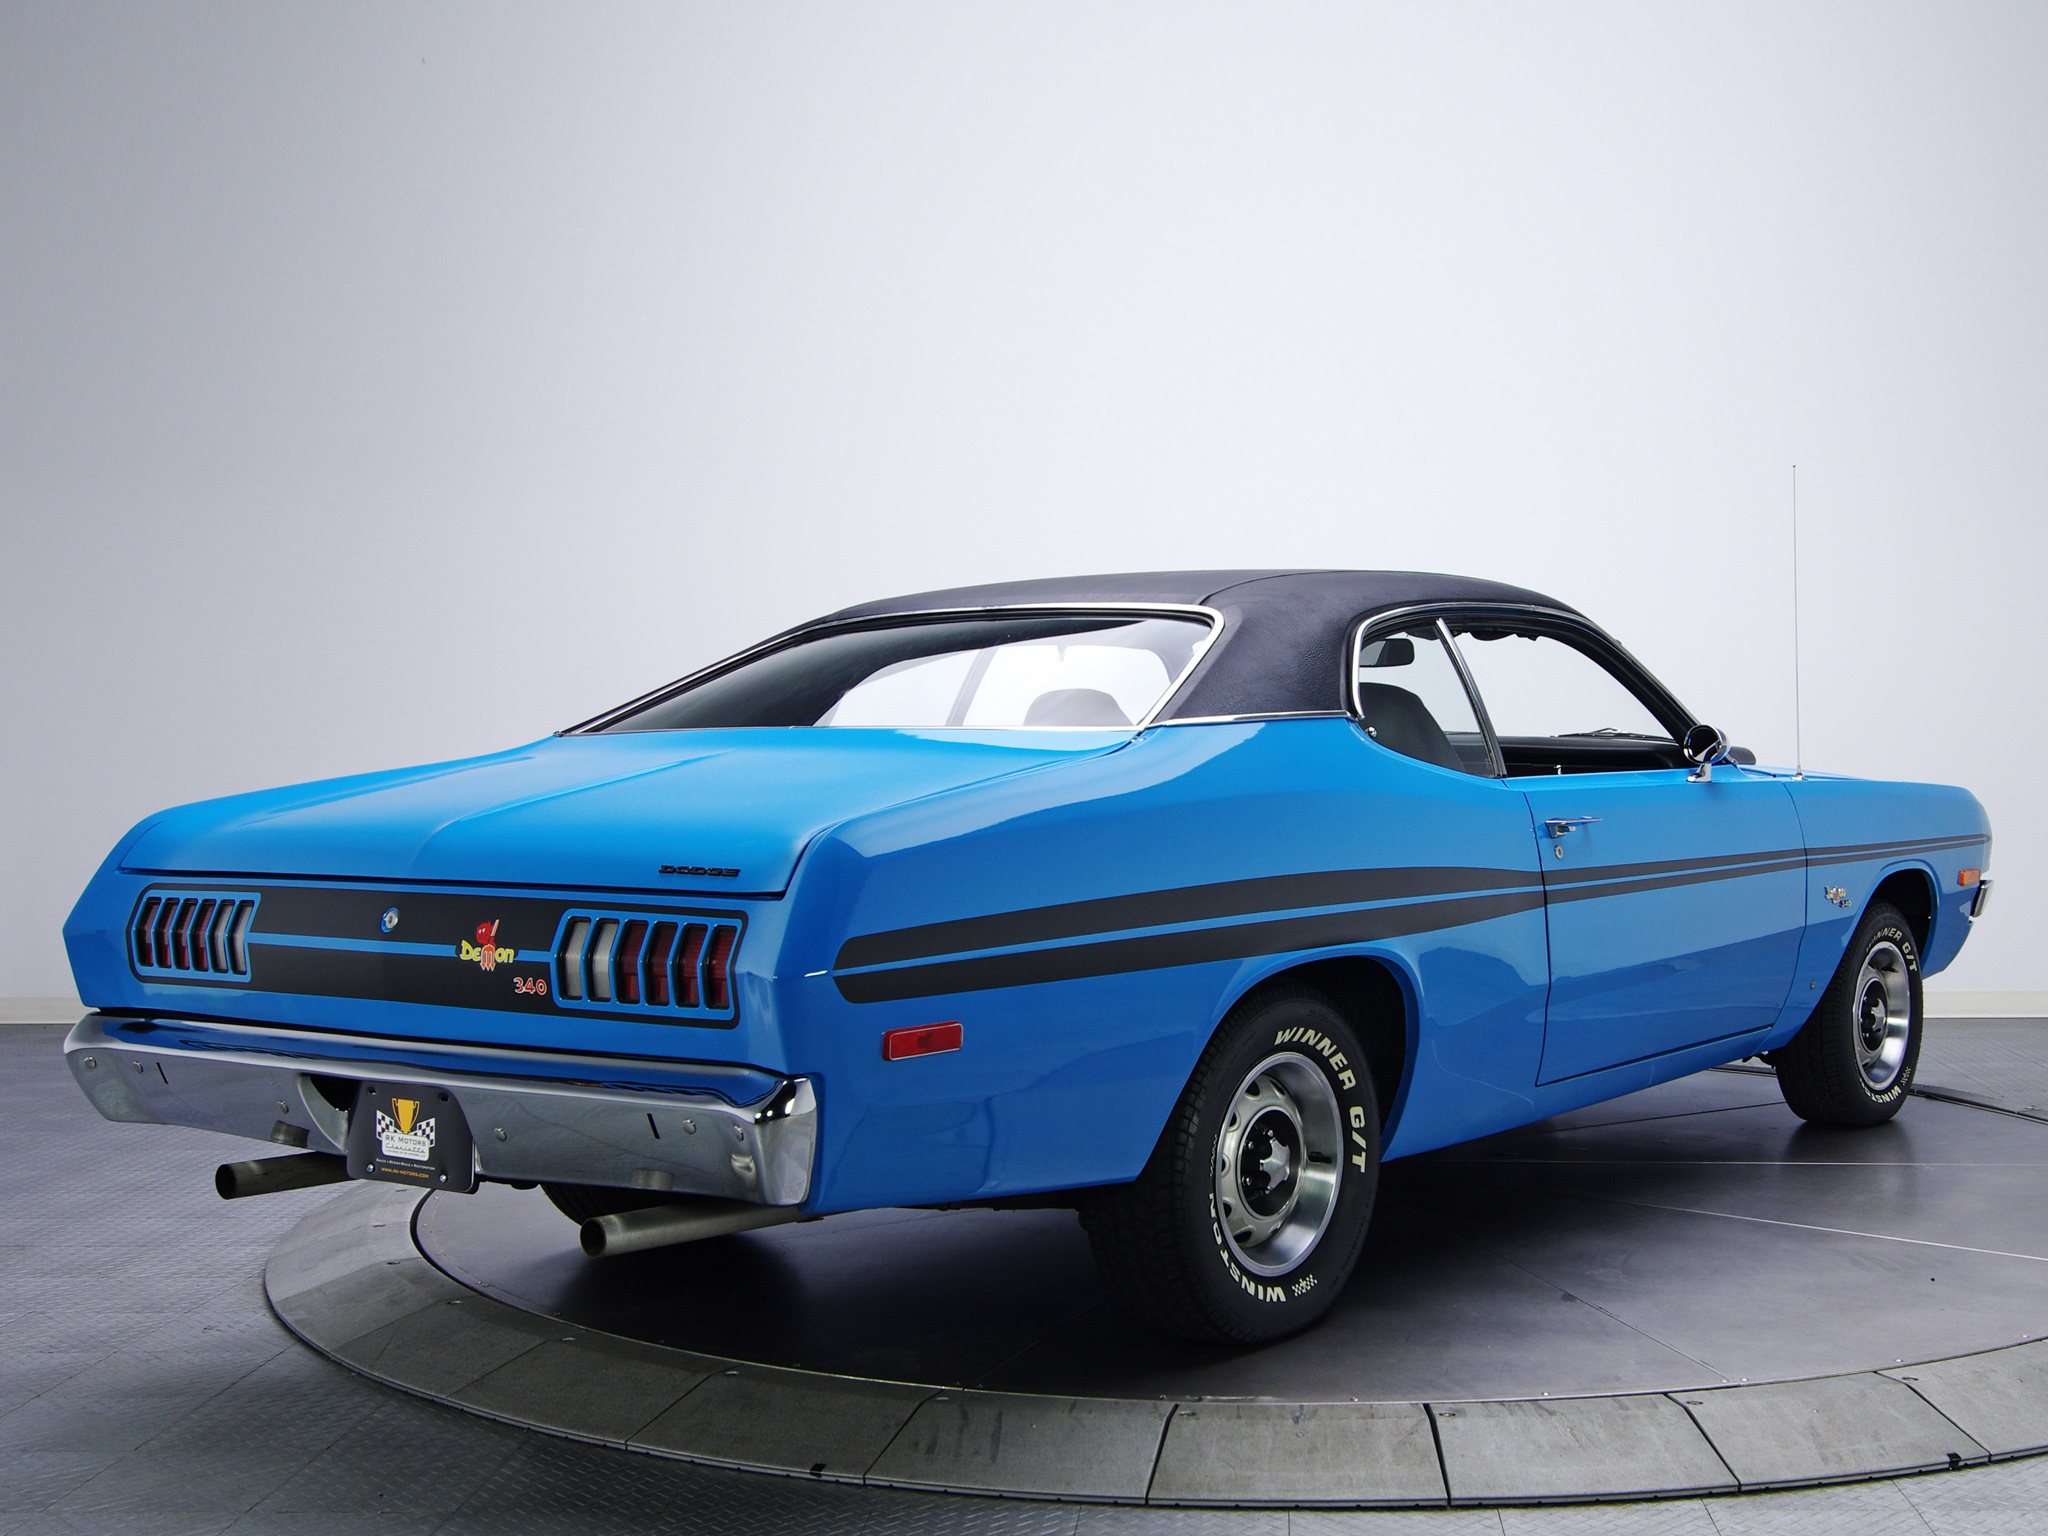 1972 dodge dart demon 340 lm29 muscle classic g wallpaper. Black Bedroom Furniture Sets. Home Design Ideas